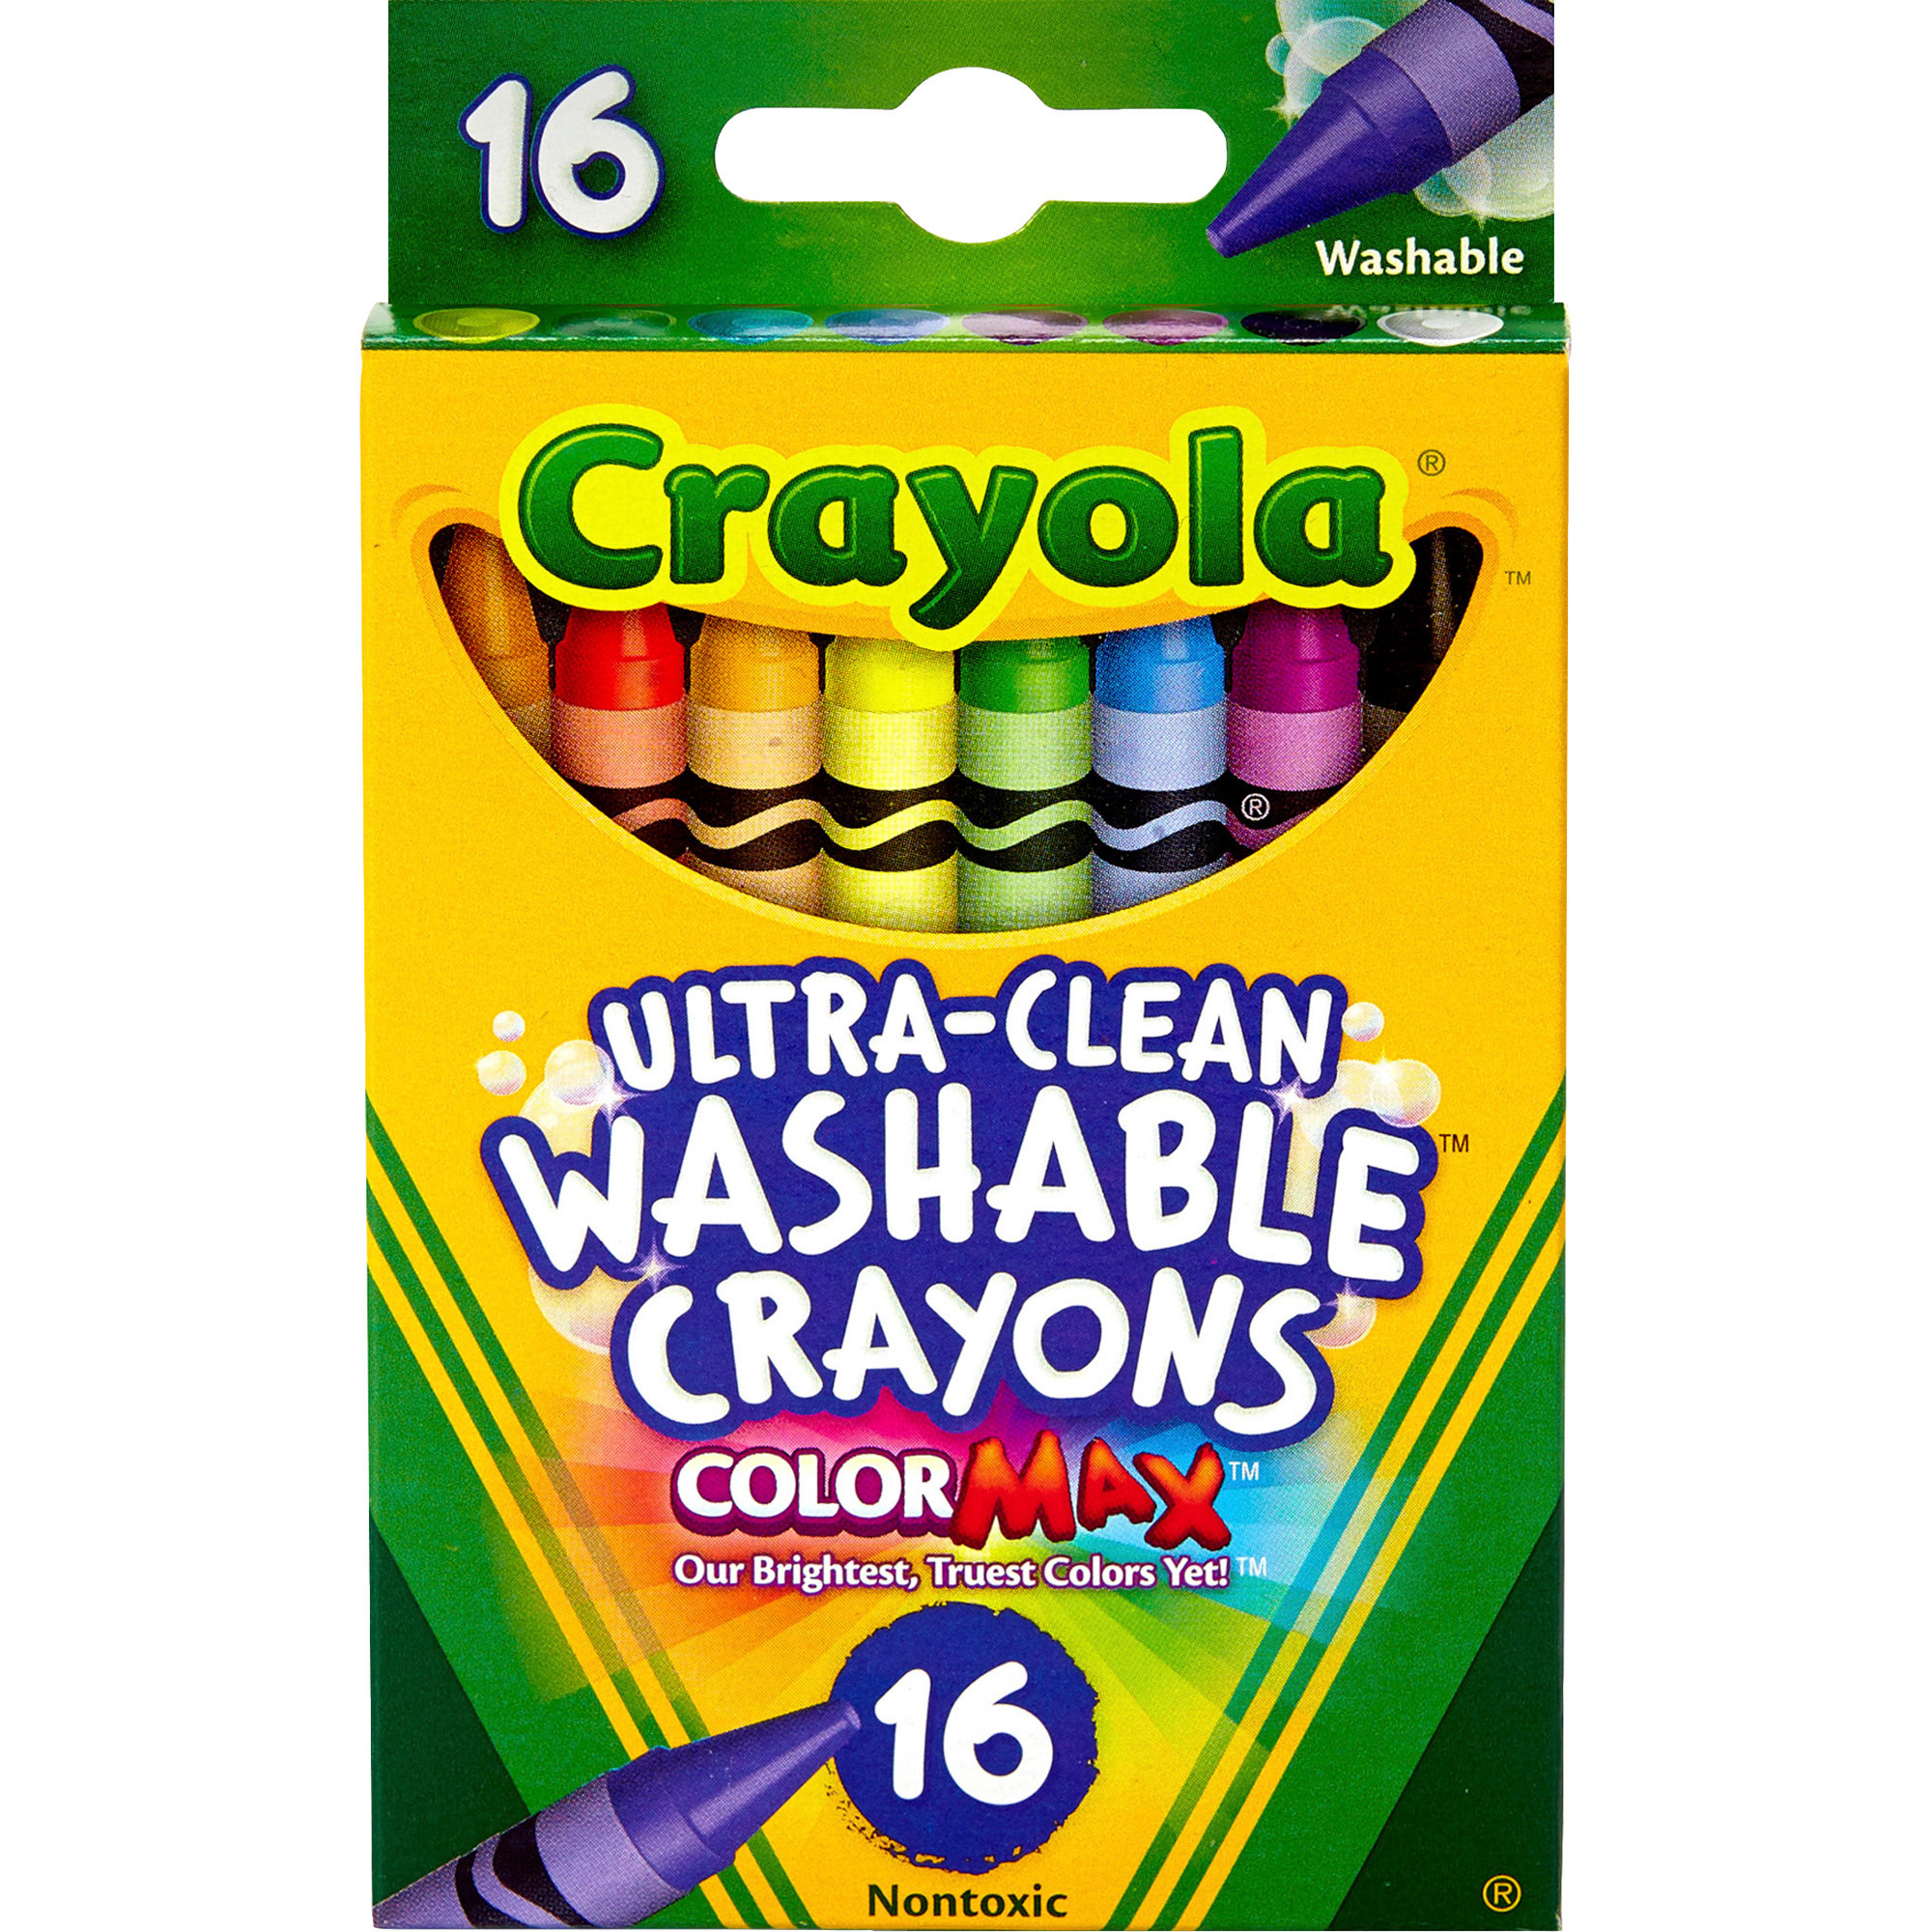 Crayola Ultra Clean Washable Crayons, 16 Count And Colors